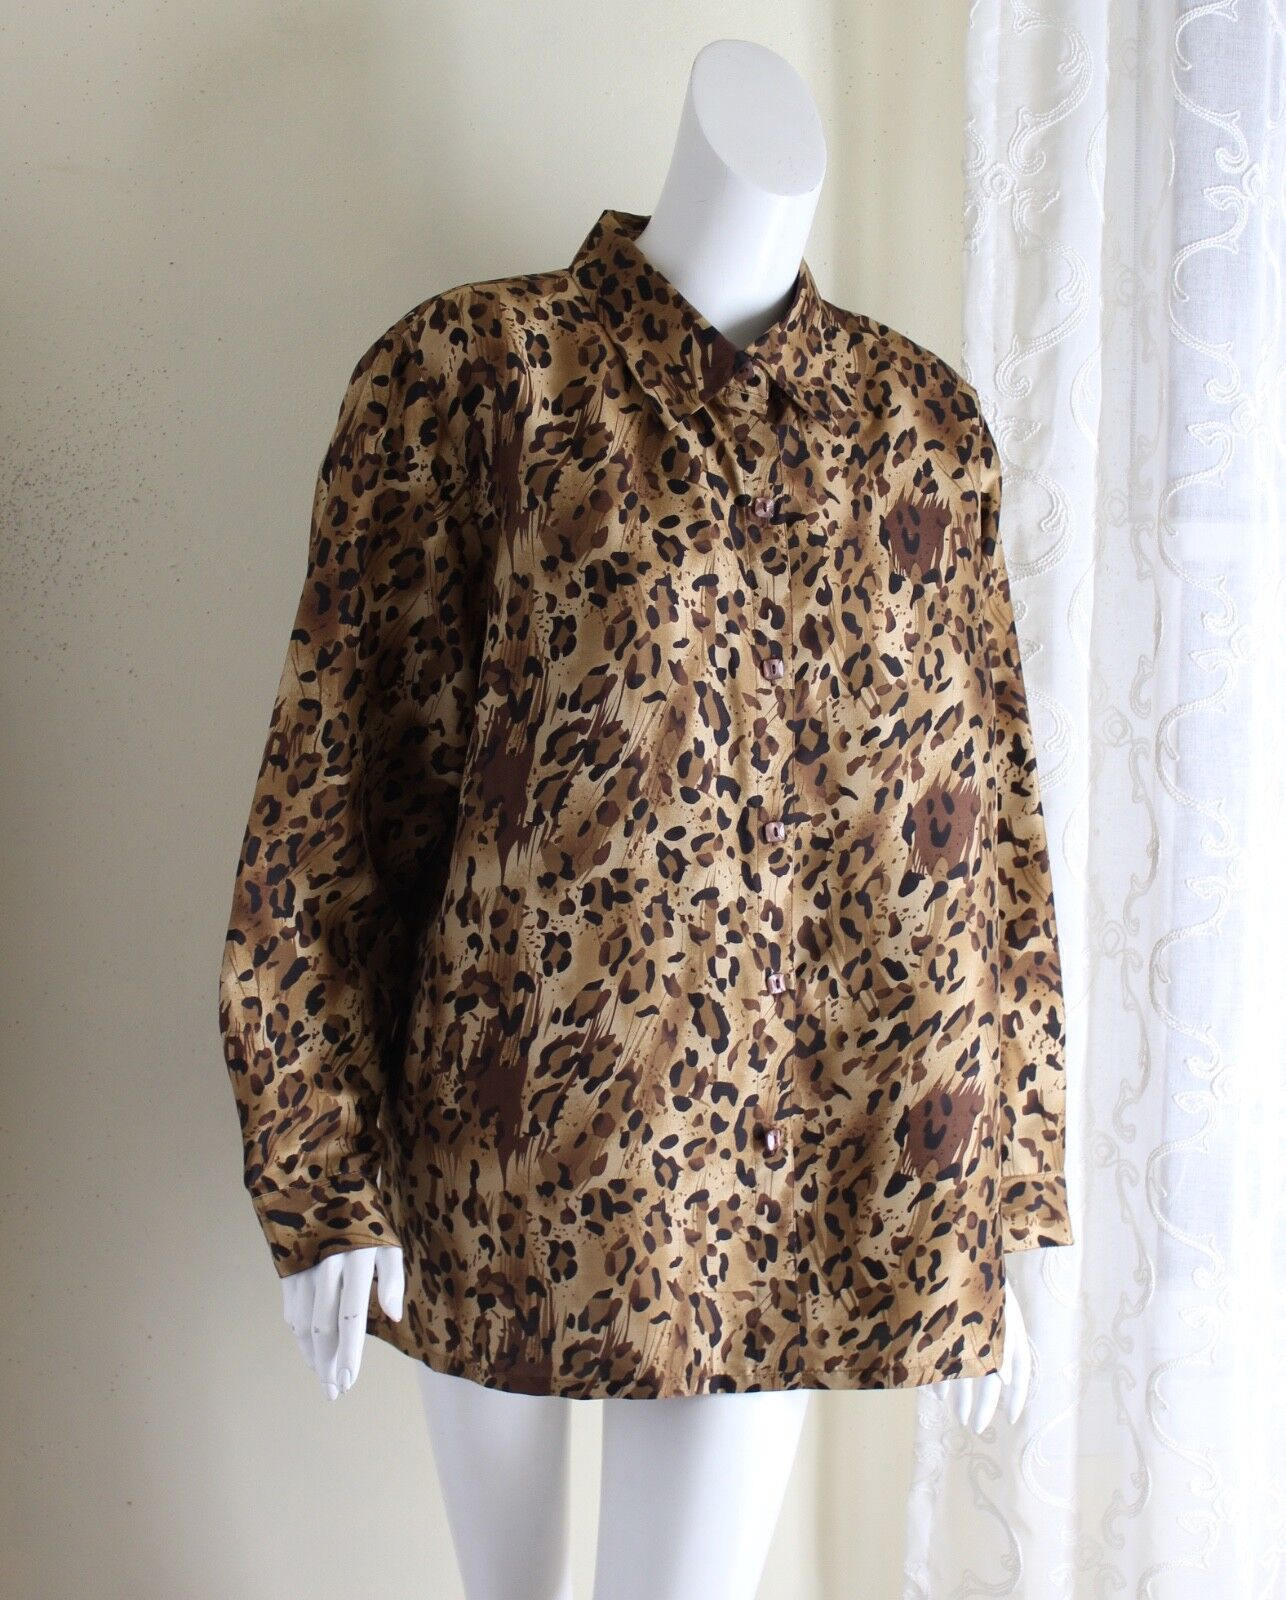 CLOTHES -Sz 2X Gorgeous Designer Silk Animal Print Blouse Shirt Top